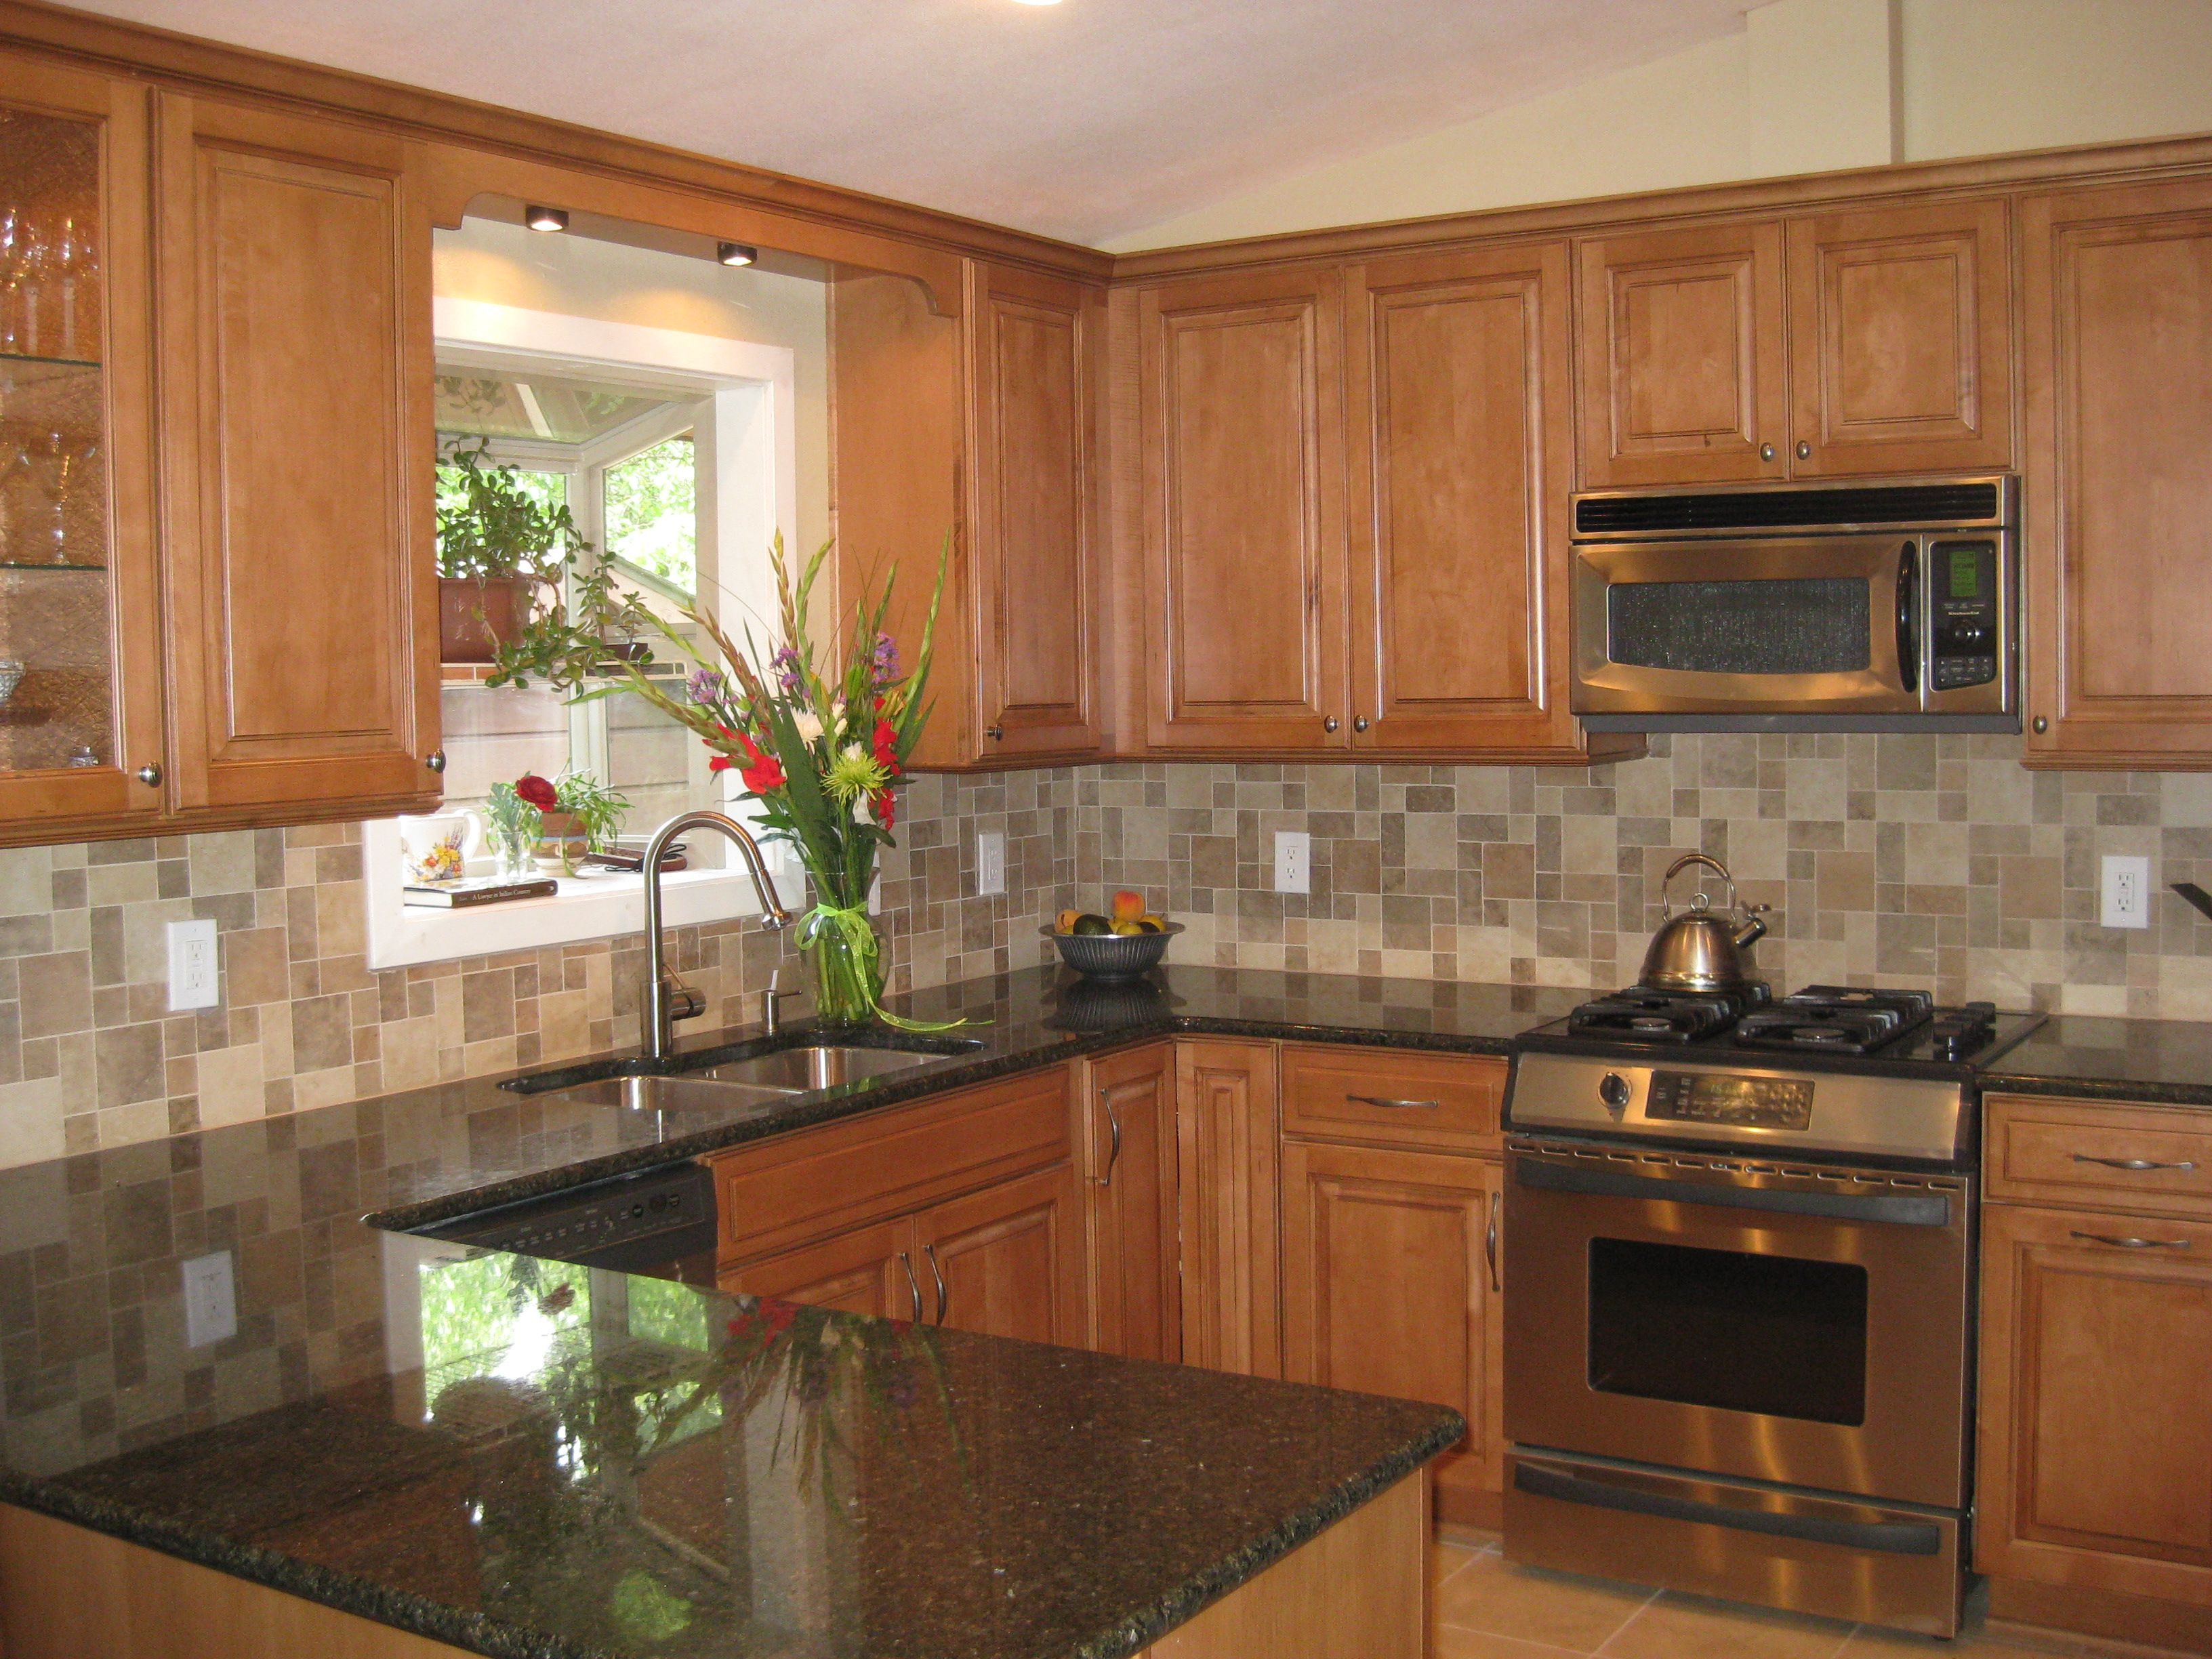 Light Maple Kitchen Cabinets with Granite Countertops ... on What Color Backsplash With Maple Cabinets  id=88431